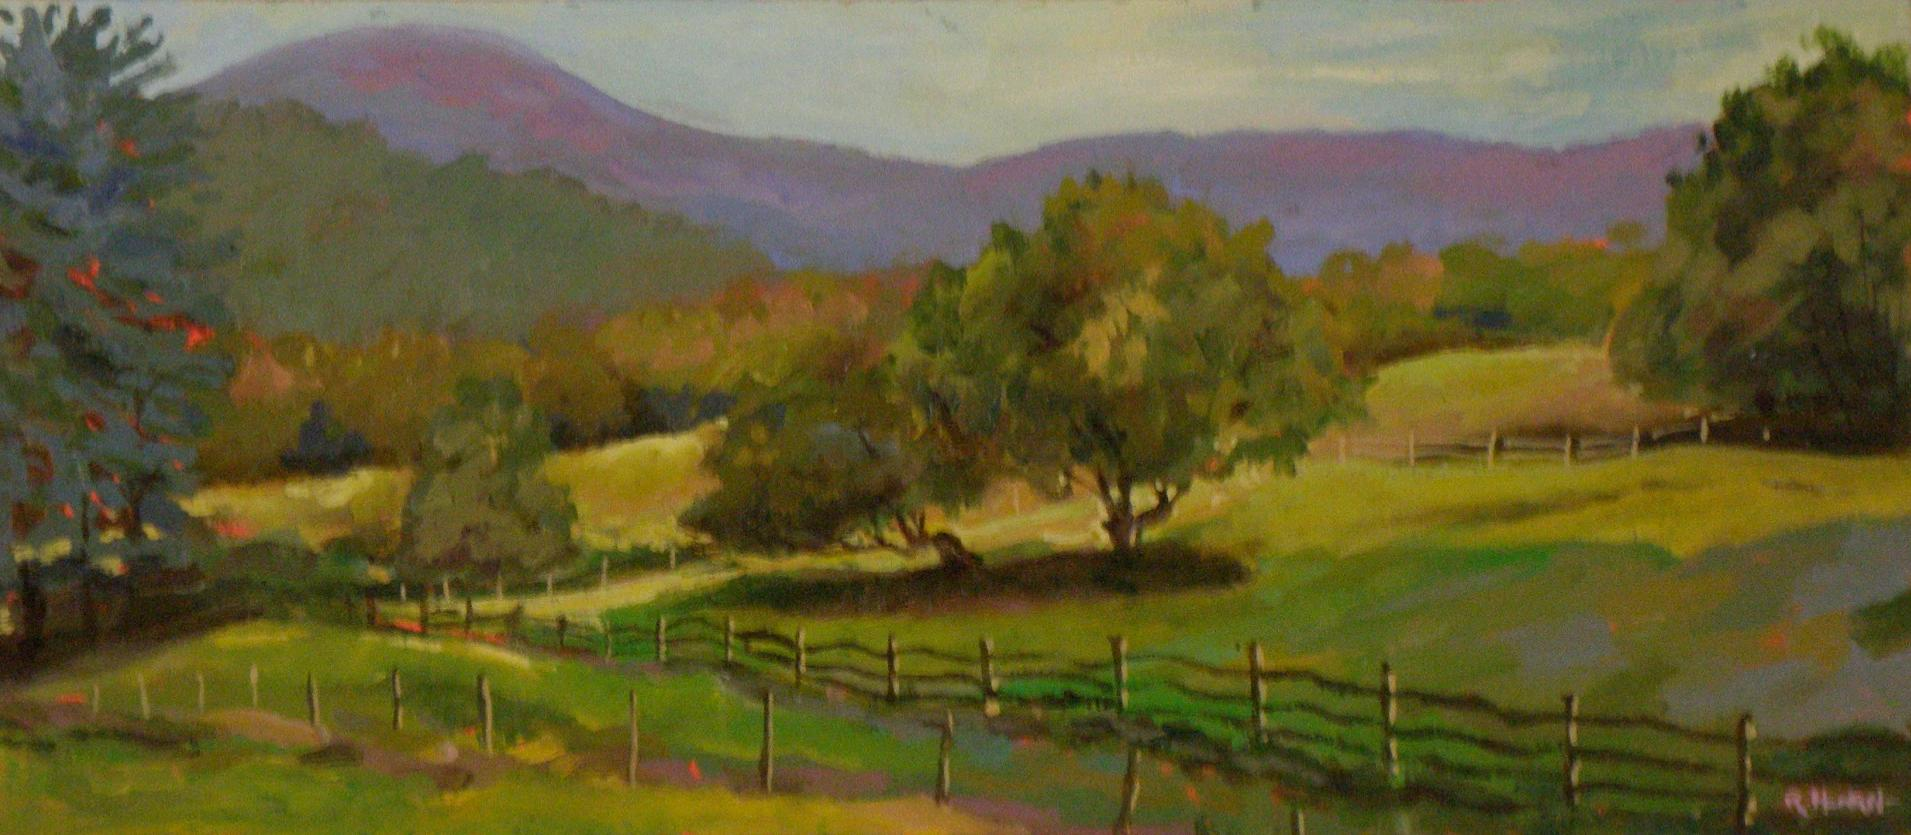 Pasture, Lower Parker Hill Road, Springfield, Vermont; oil on panel